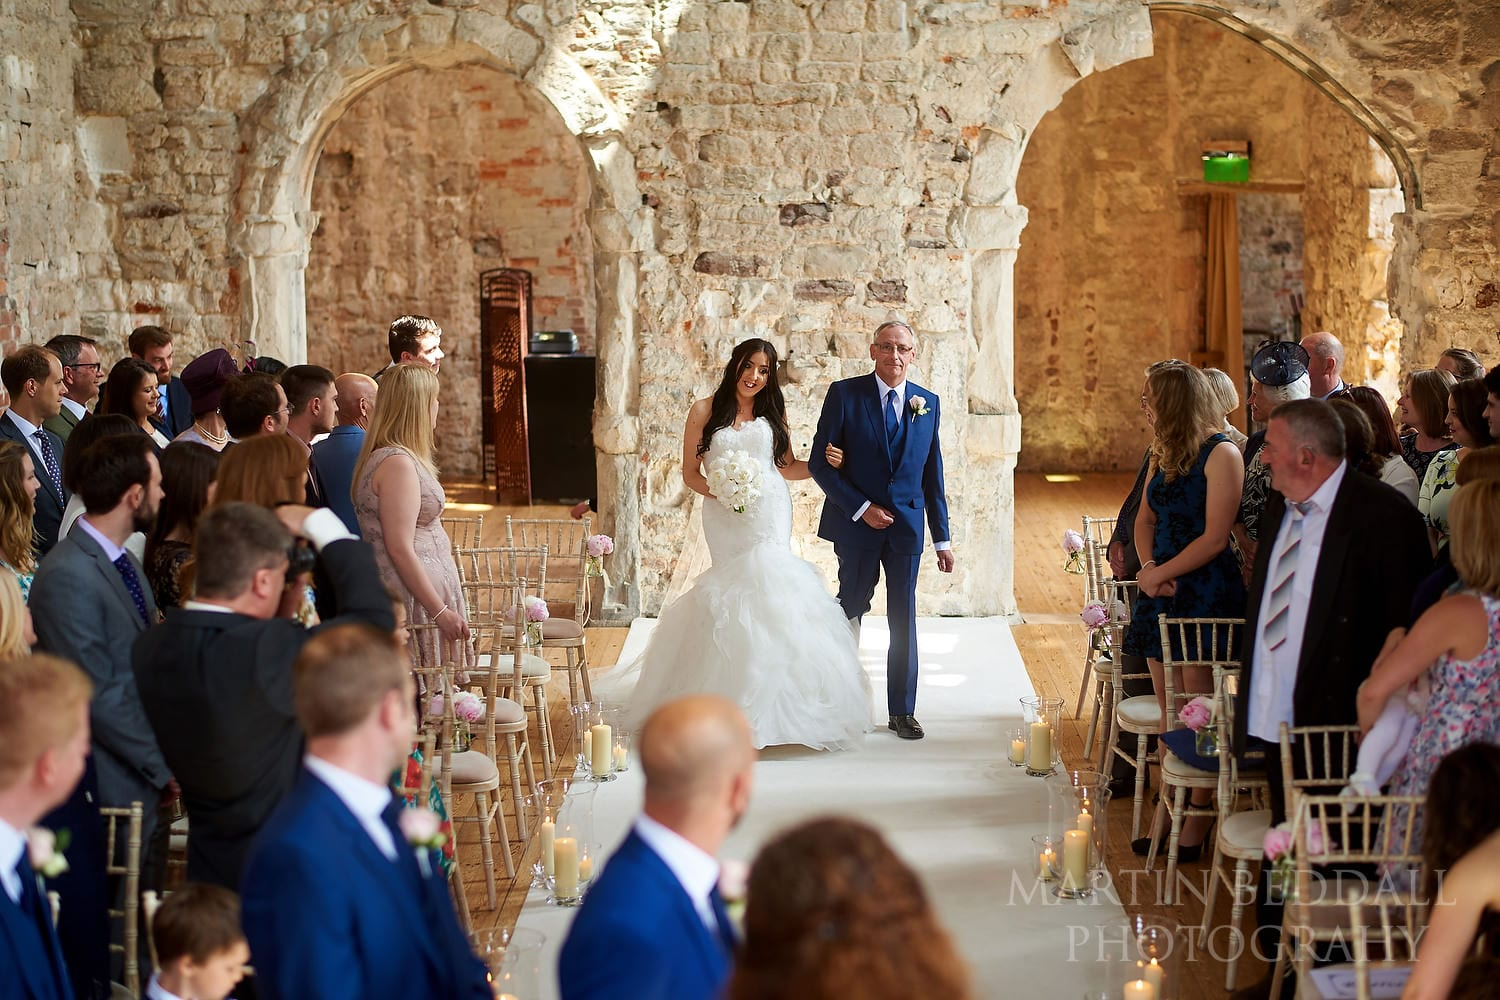 Start of the ceremony at Lulworth Castle wedding